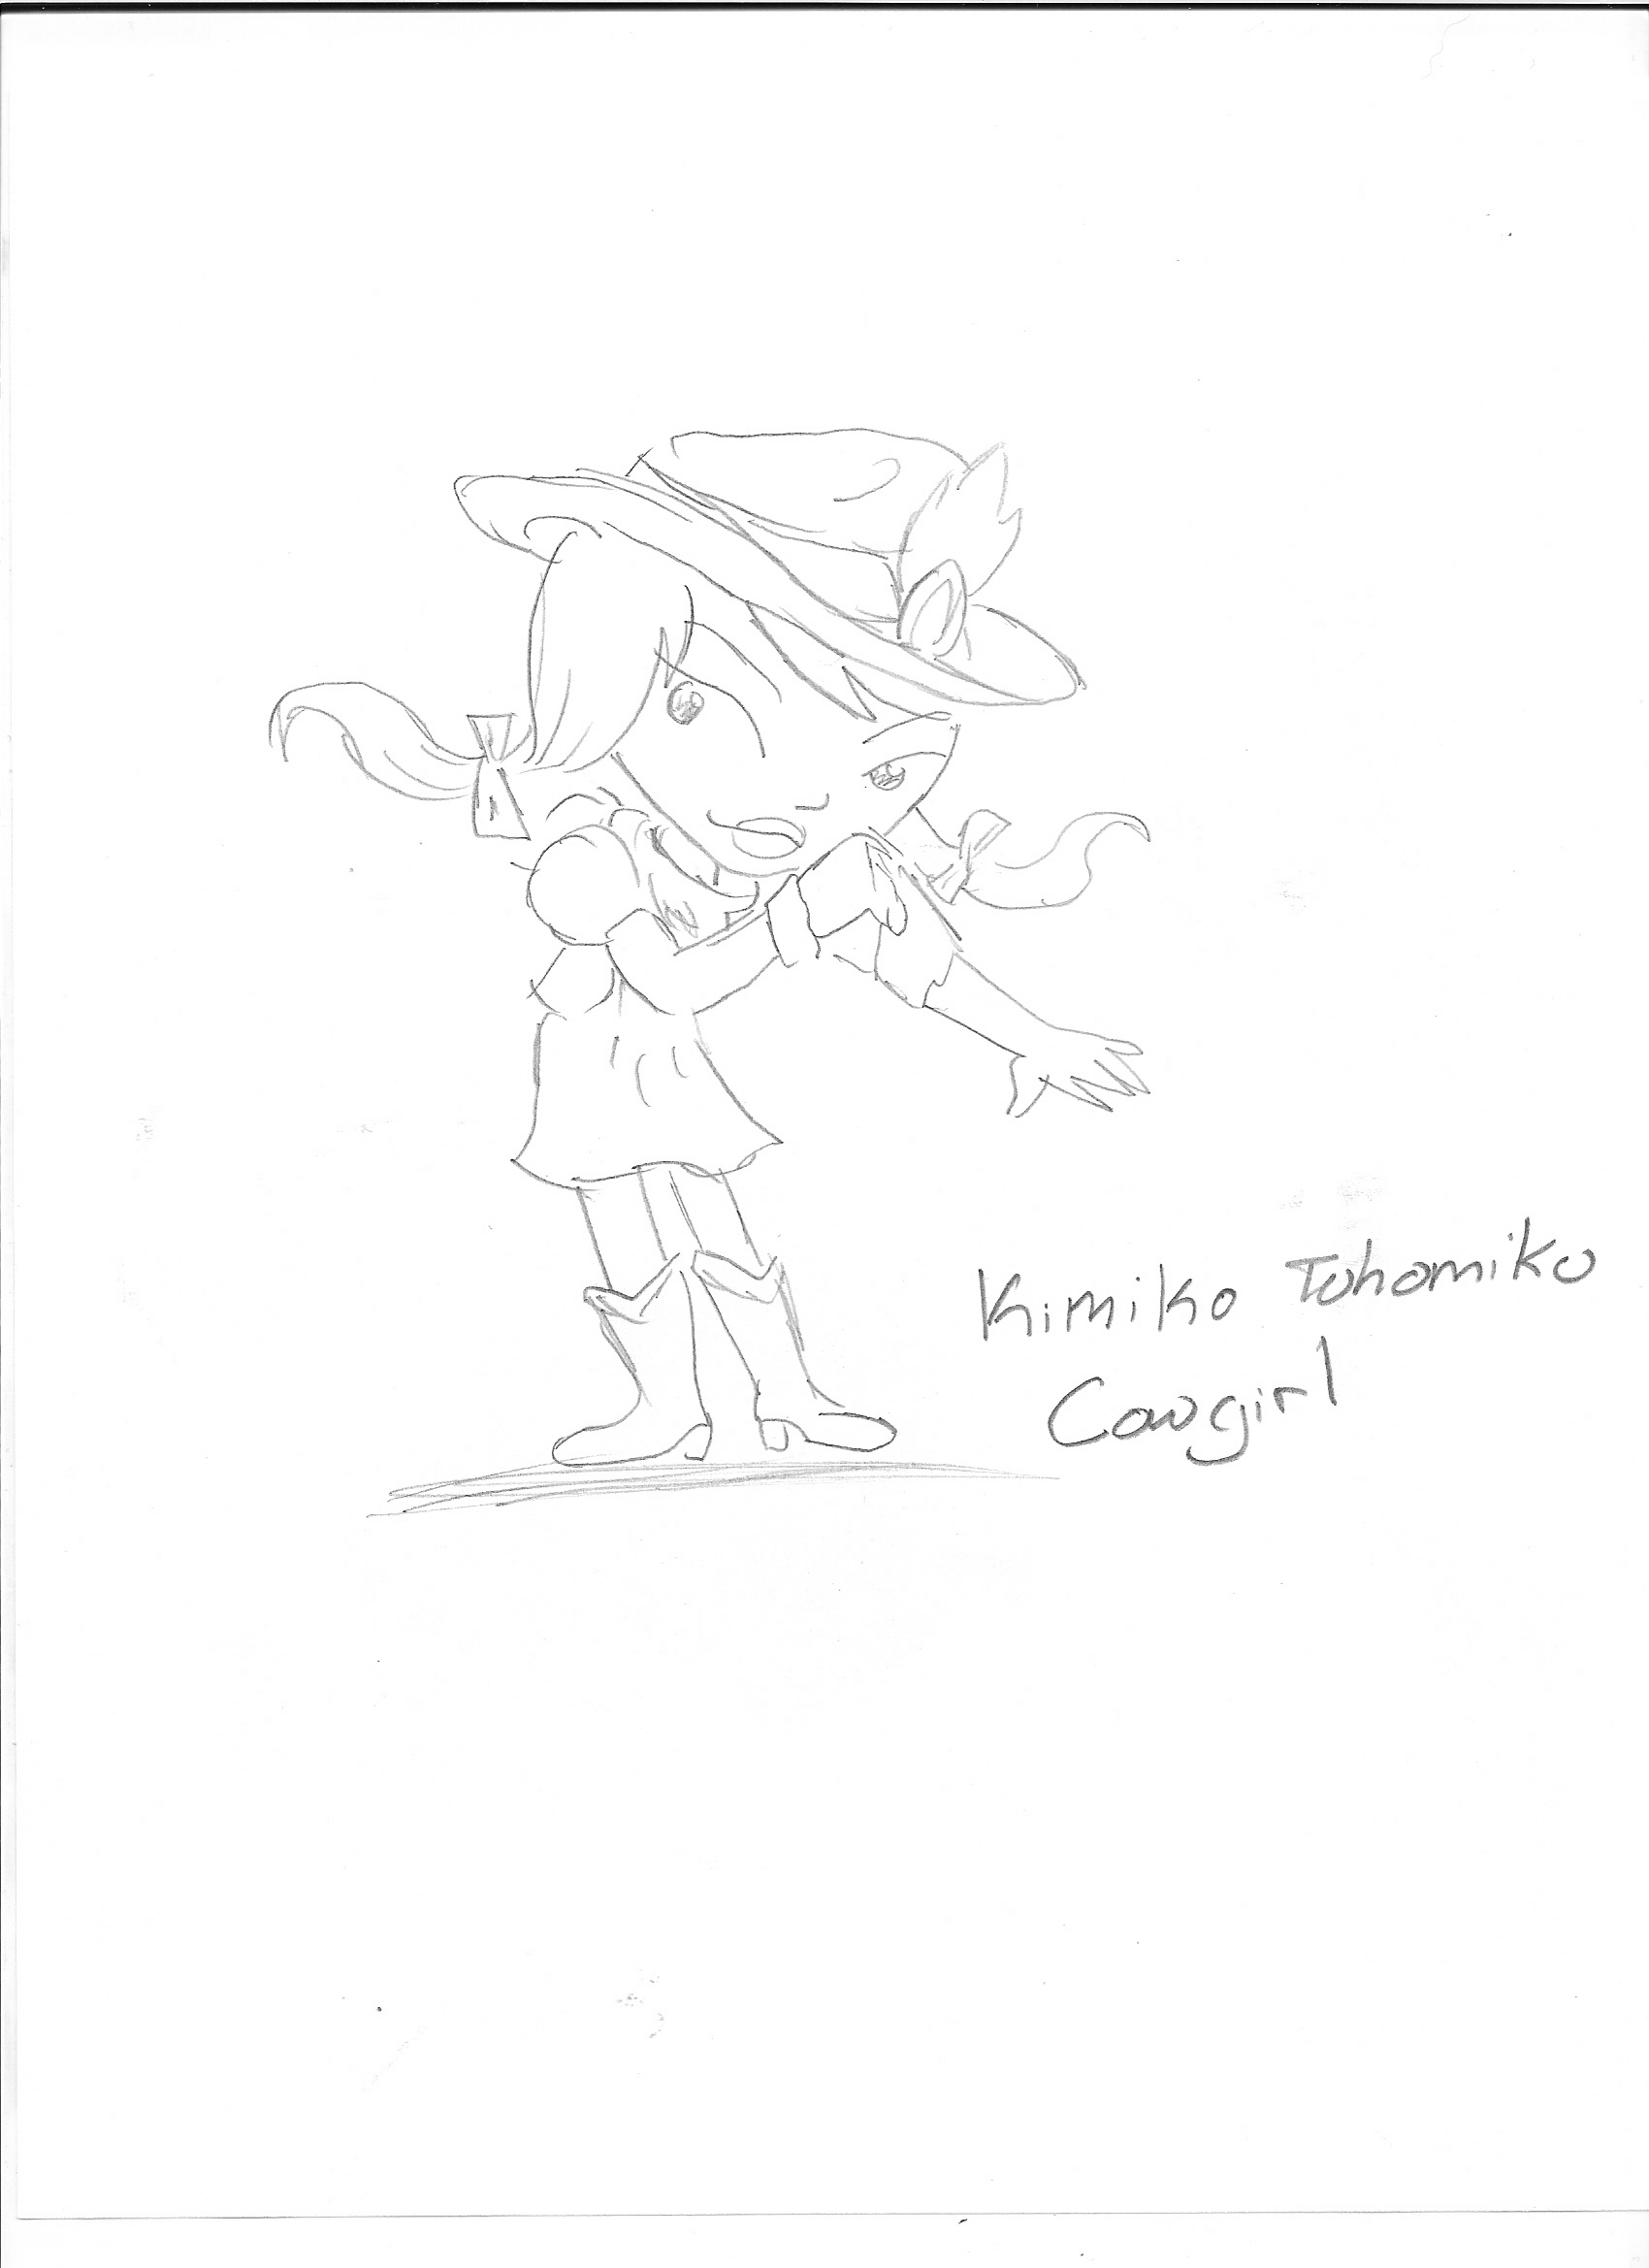 Kimiko the cowgirl by Kimikoprincesspancho